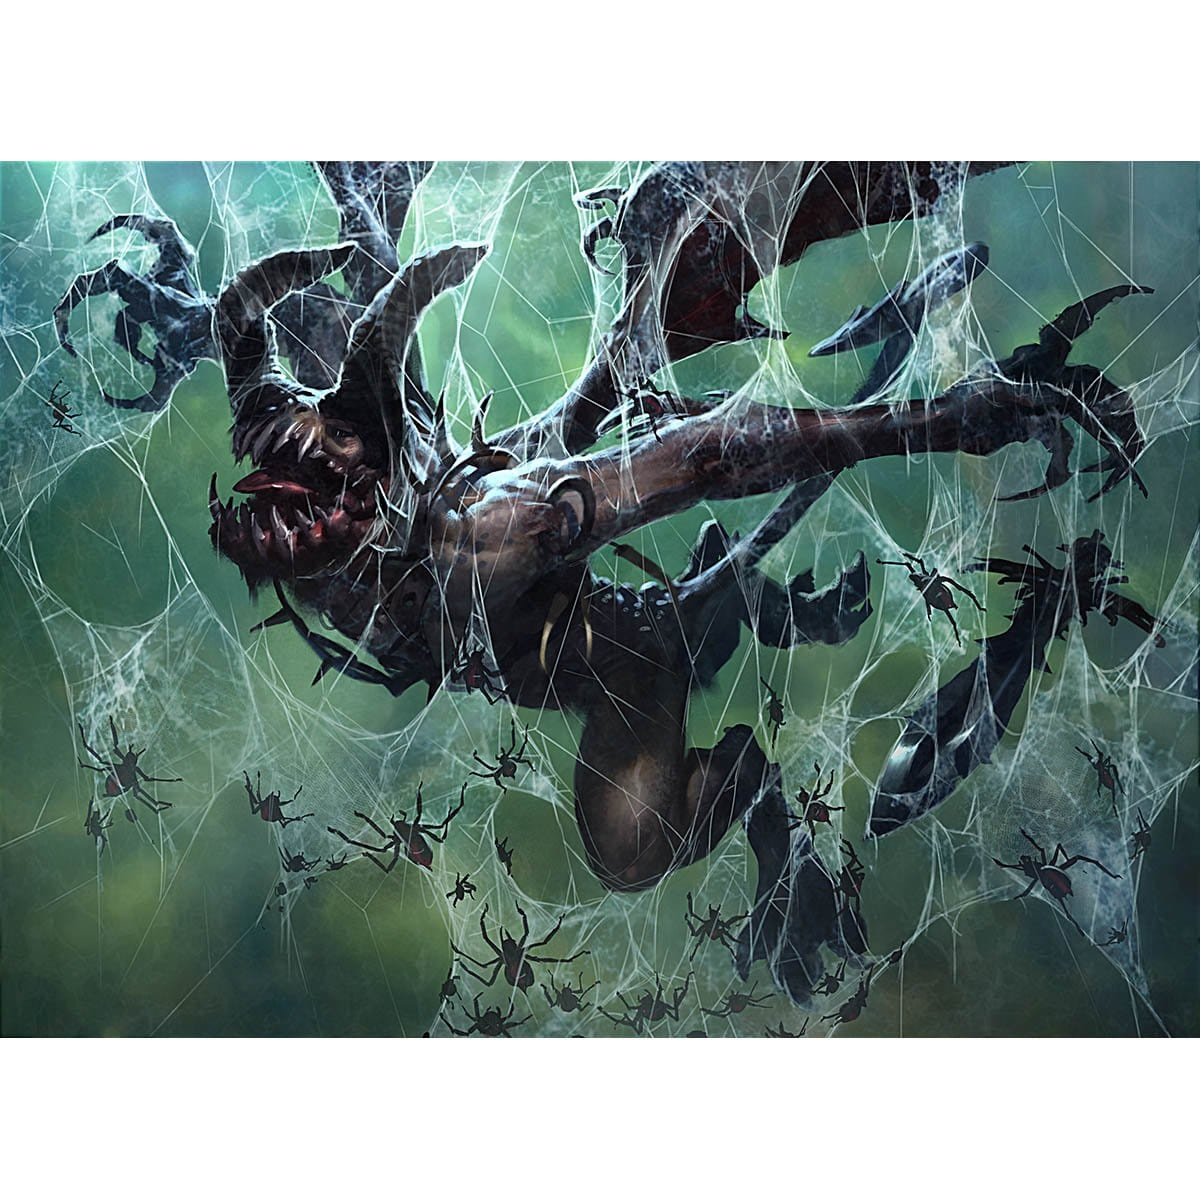 Eaten by Spiders Print - Print - Original Magic Art - Accessories for Magic the Gathering and other card games